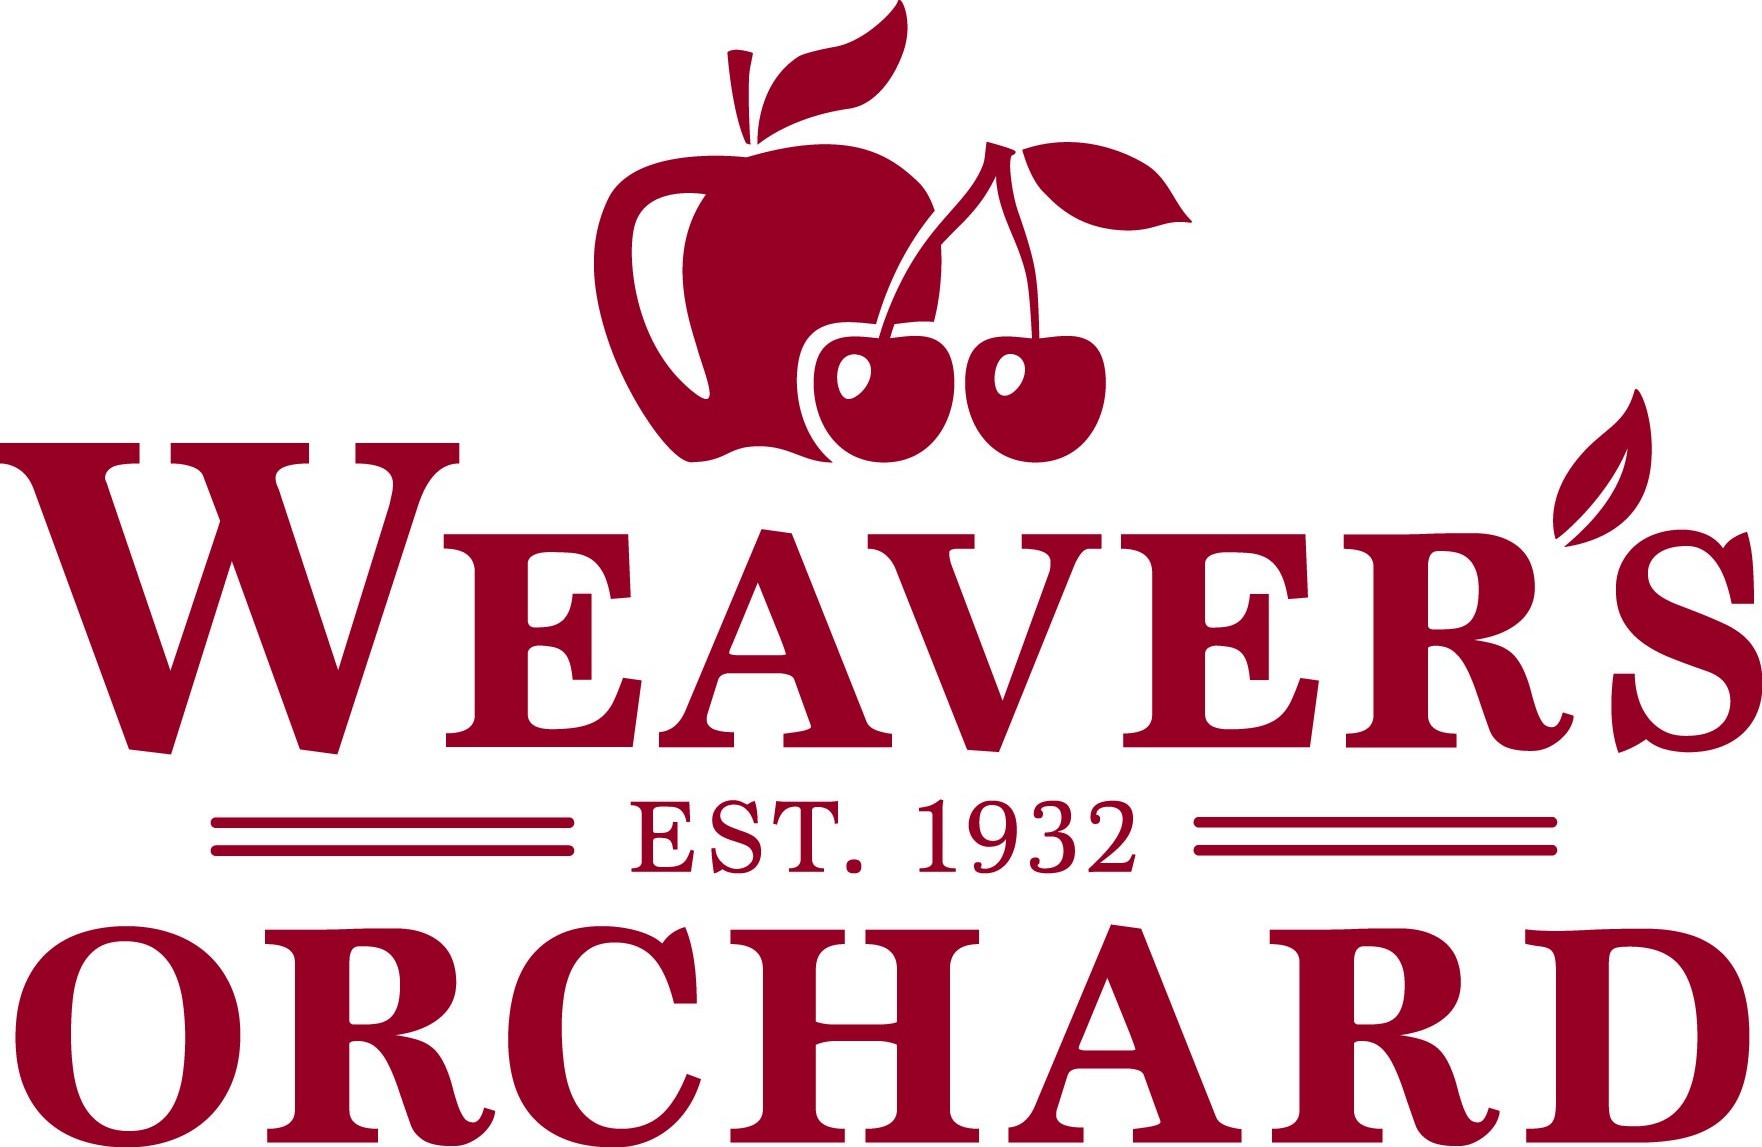 Weaver's Orchard, Inc.